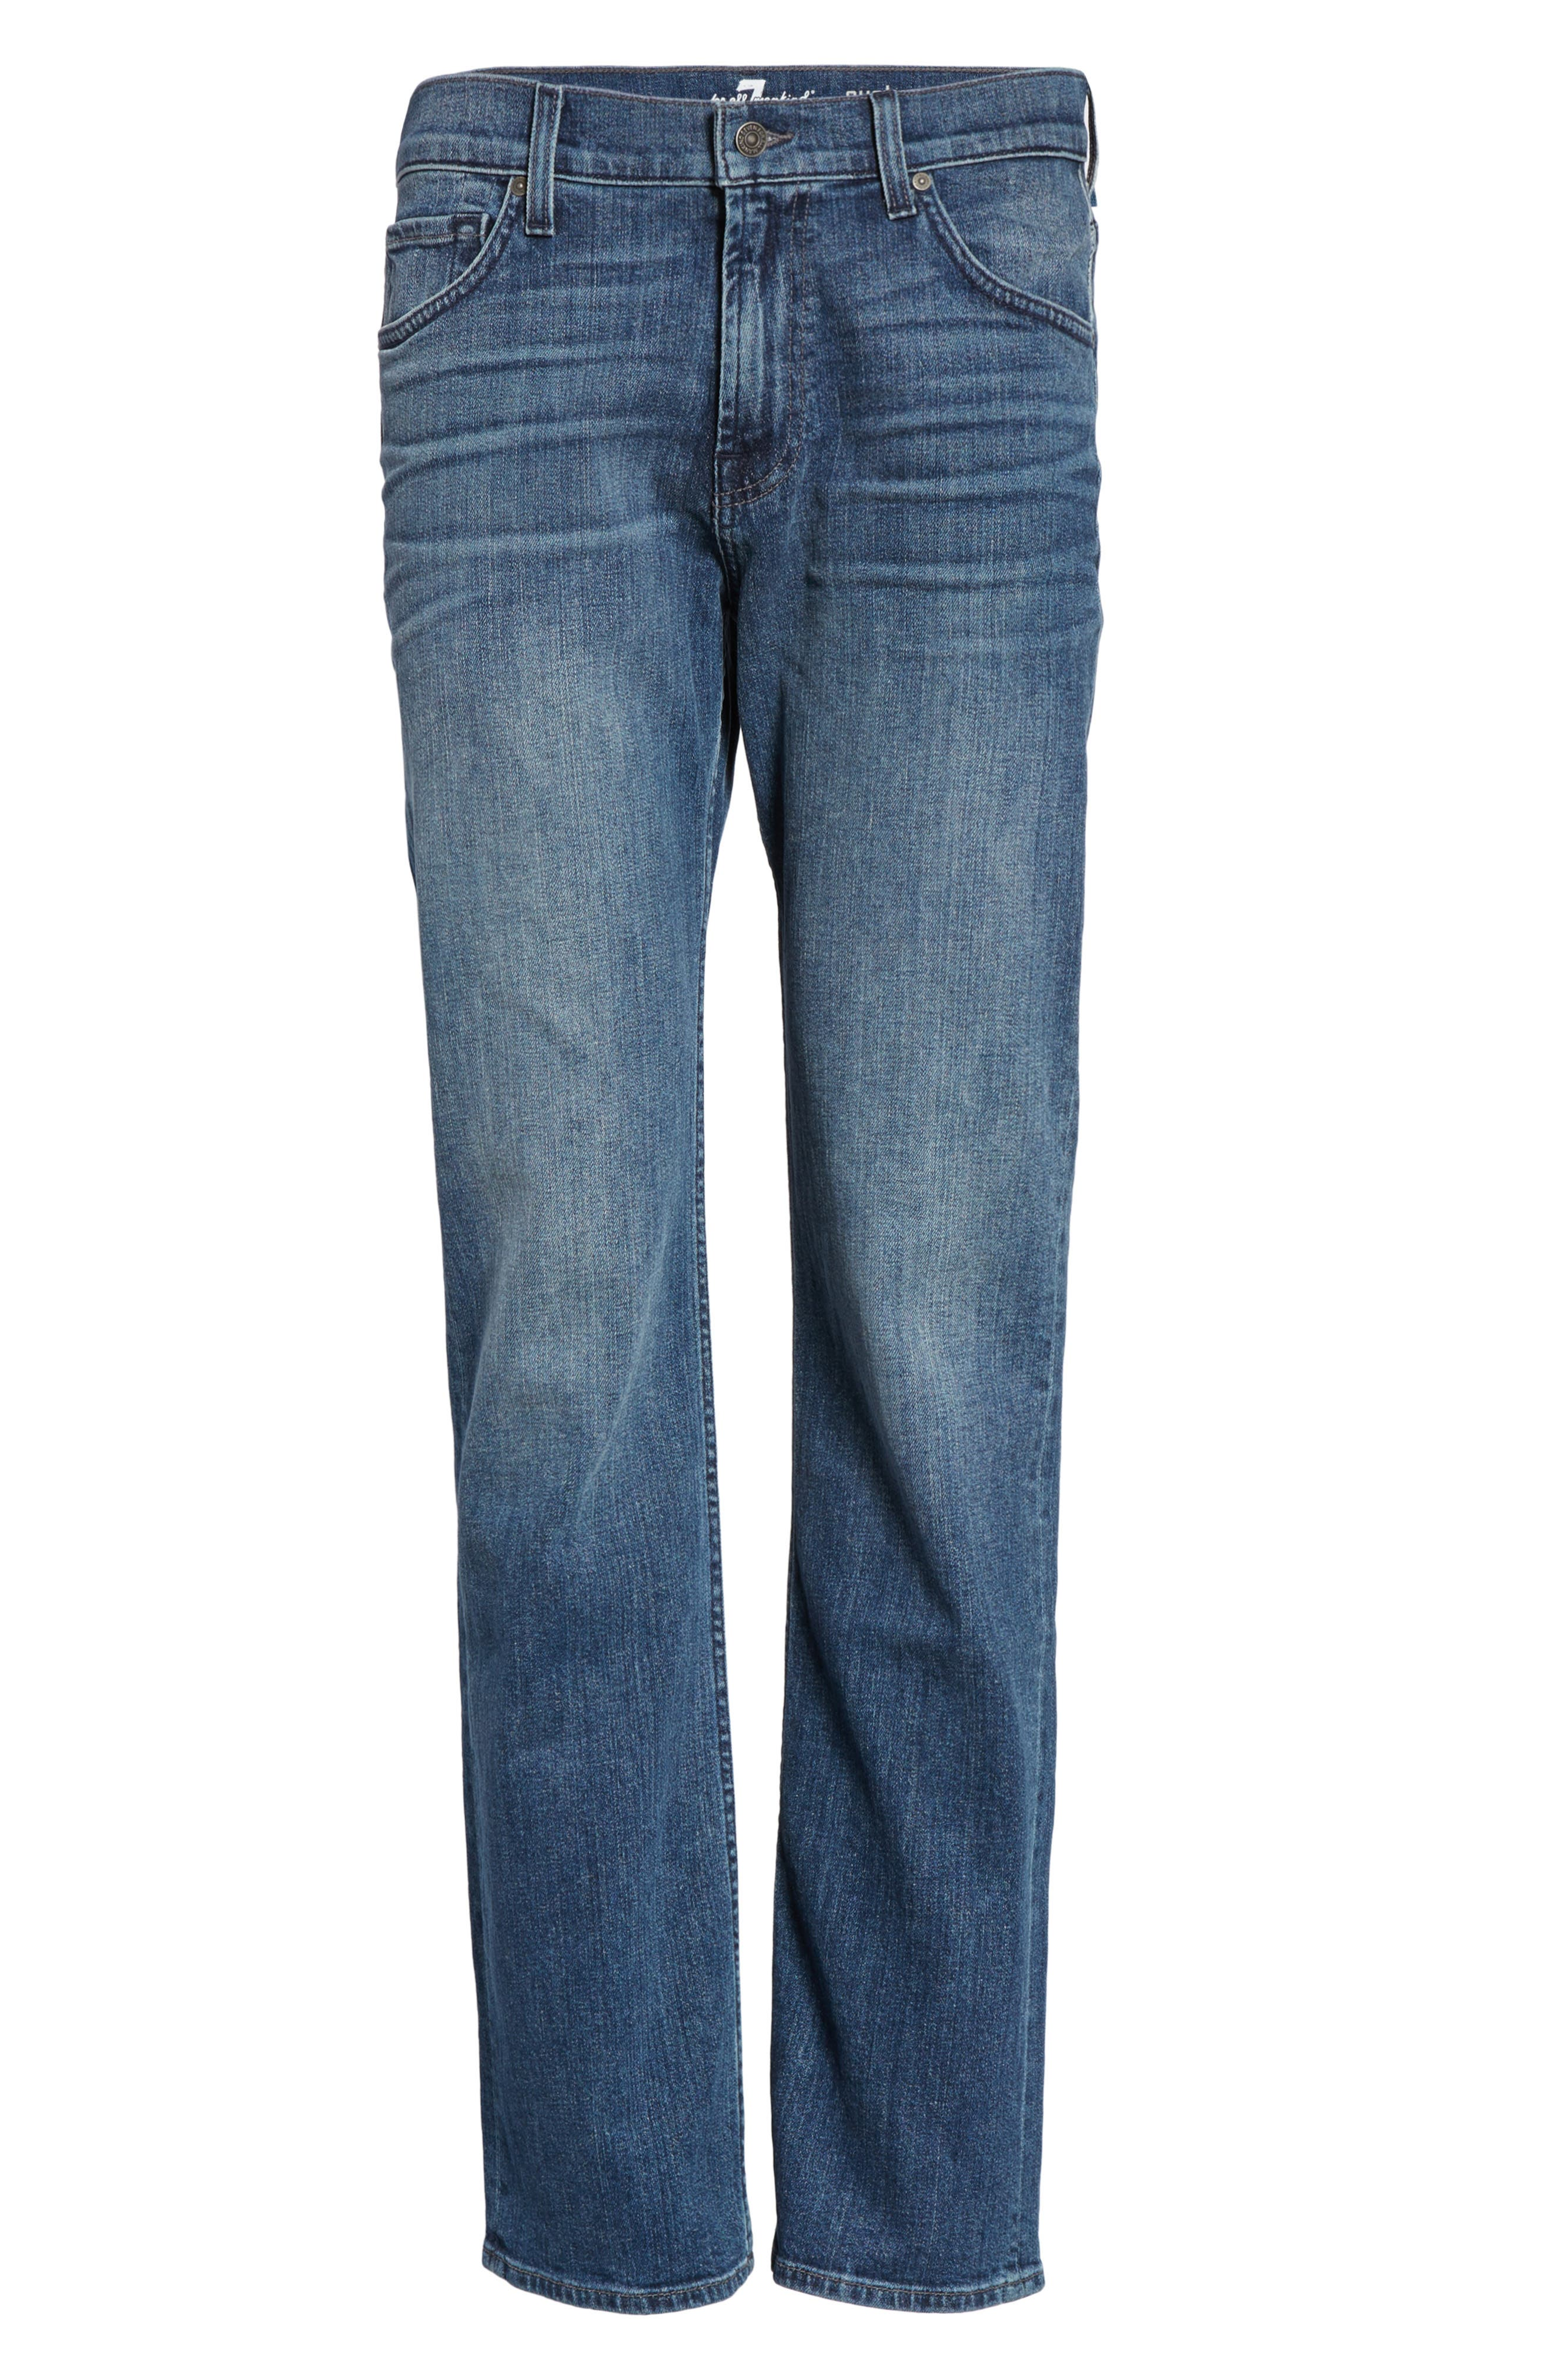 Austyn Relaxed Fit Jeans,                             Alternate thumbnail 6, color,                             Townsend